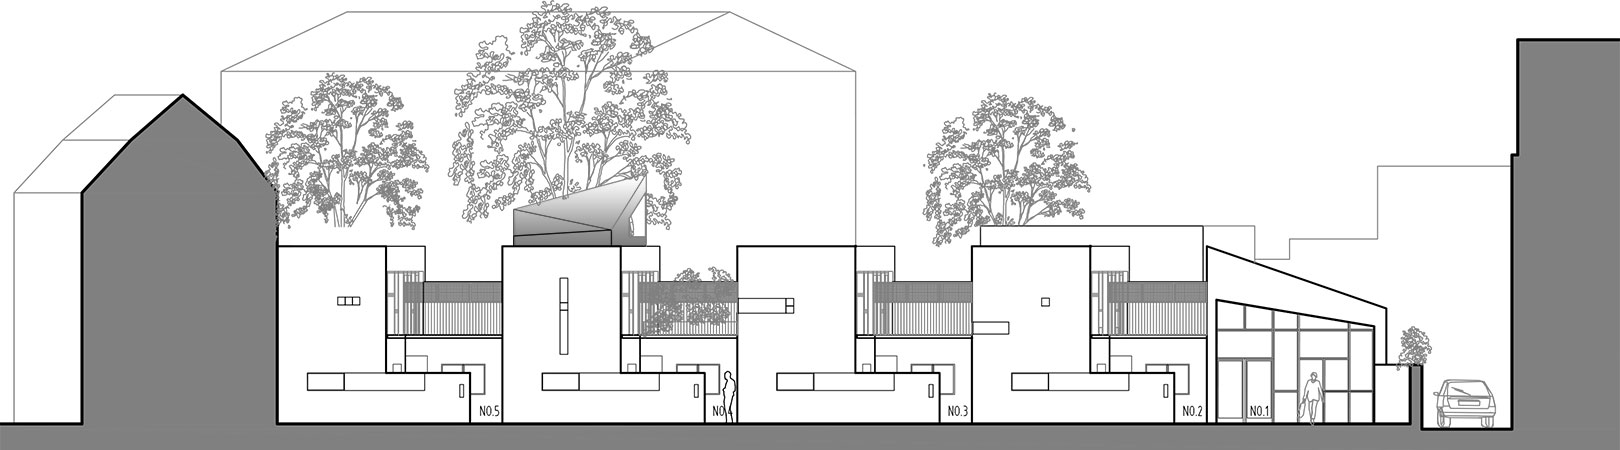 colony-mews-elevation-01